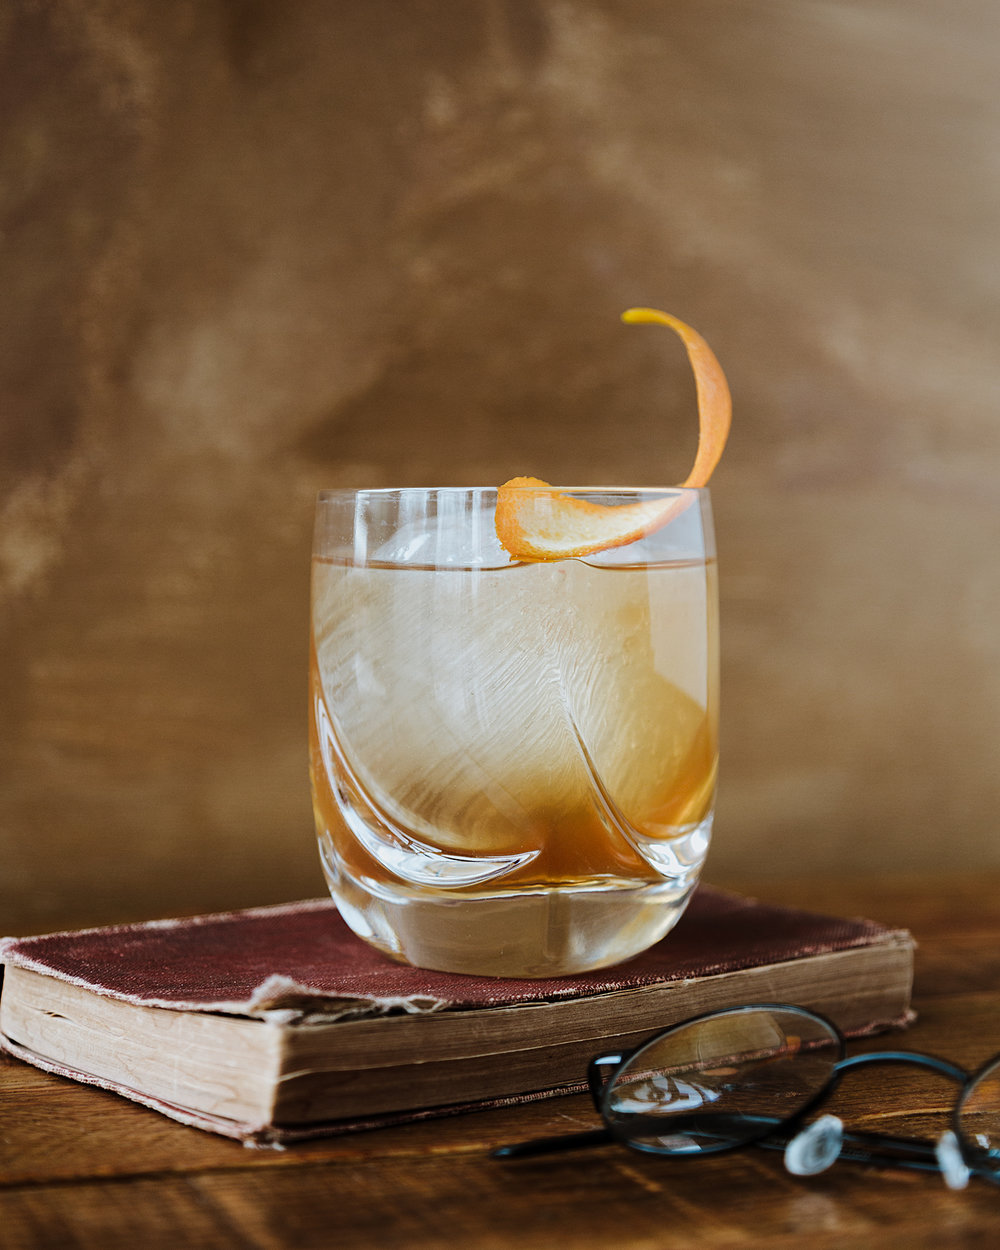 Dutch Courage (Old Fashioned Variation)